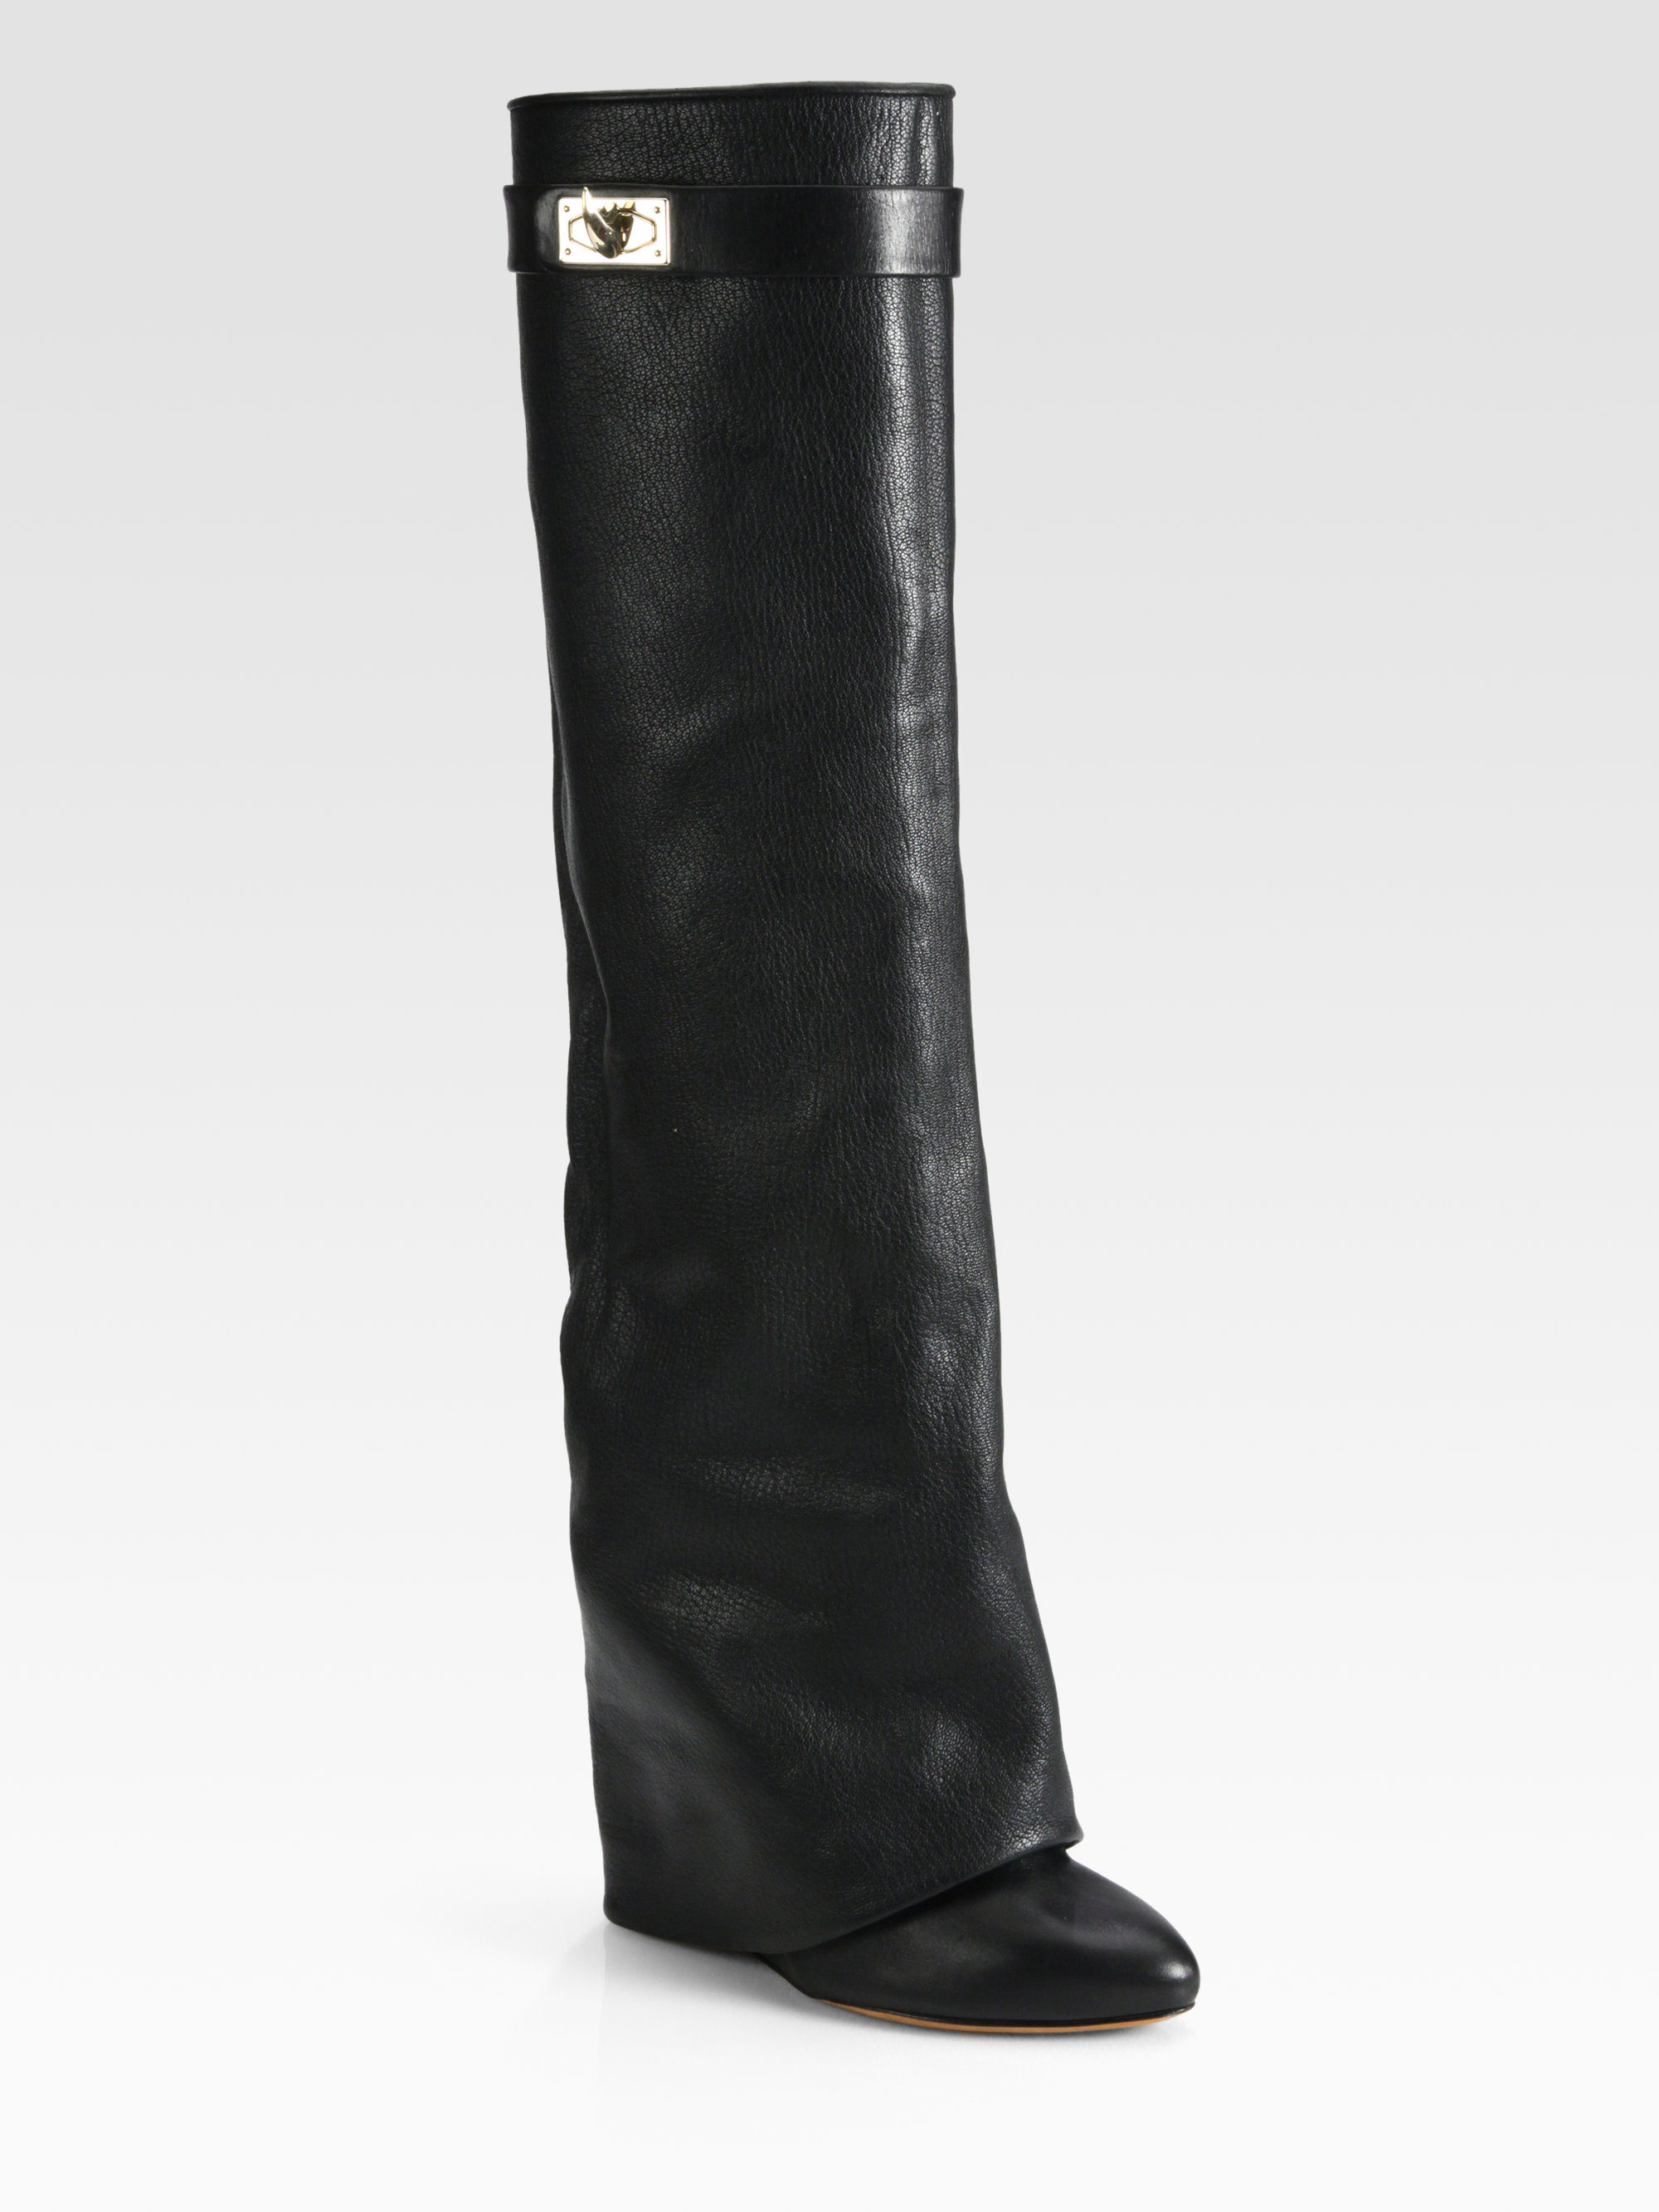 Lyst Givenchy Leather Kneehigh Sheath Boots In Black